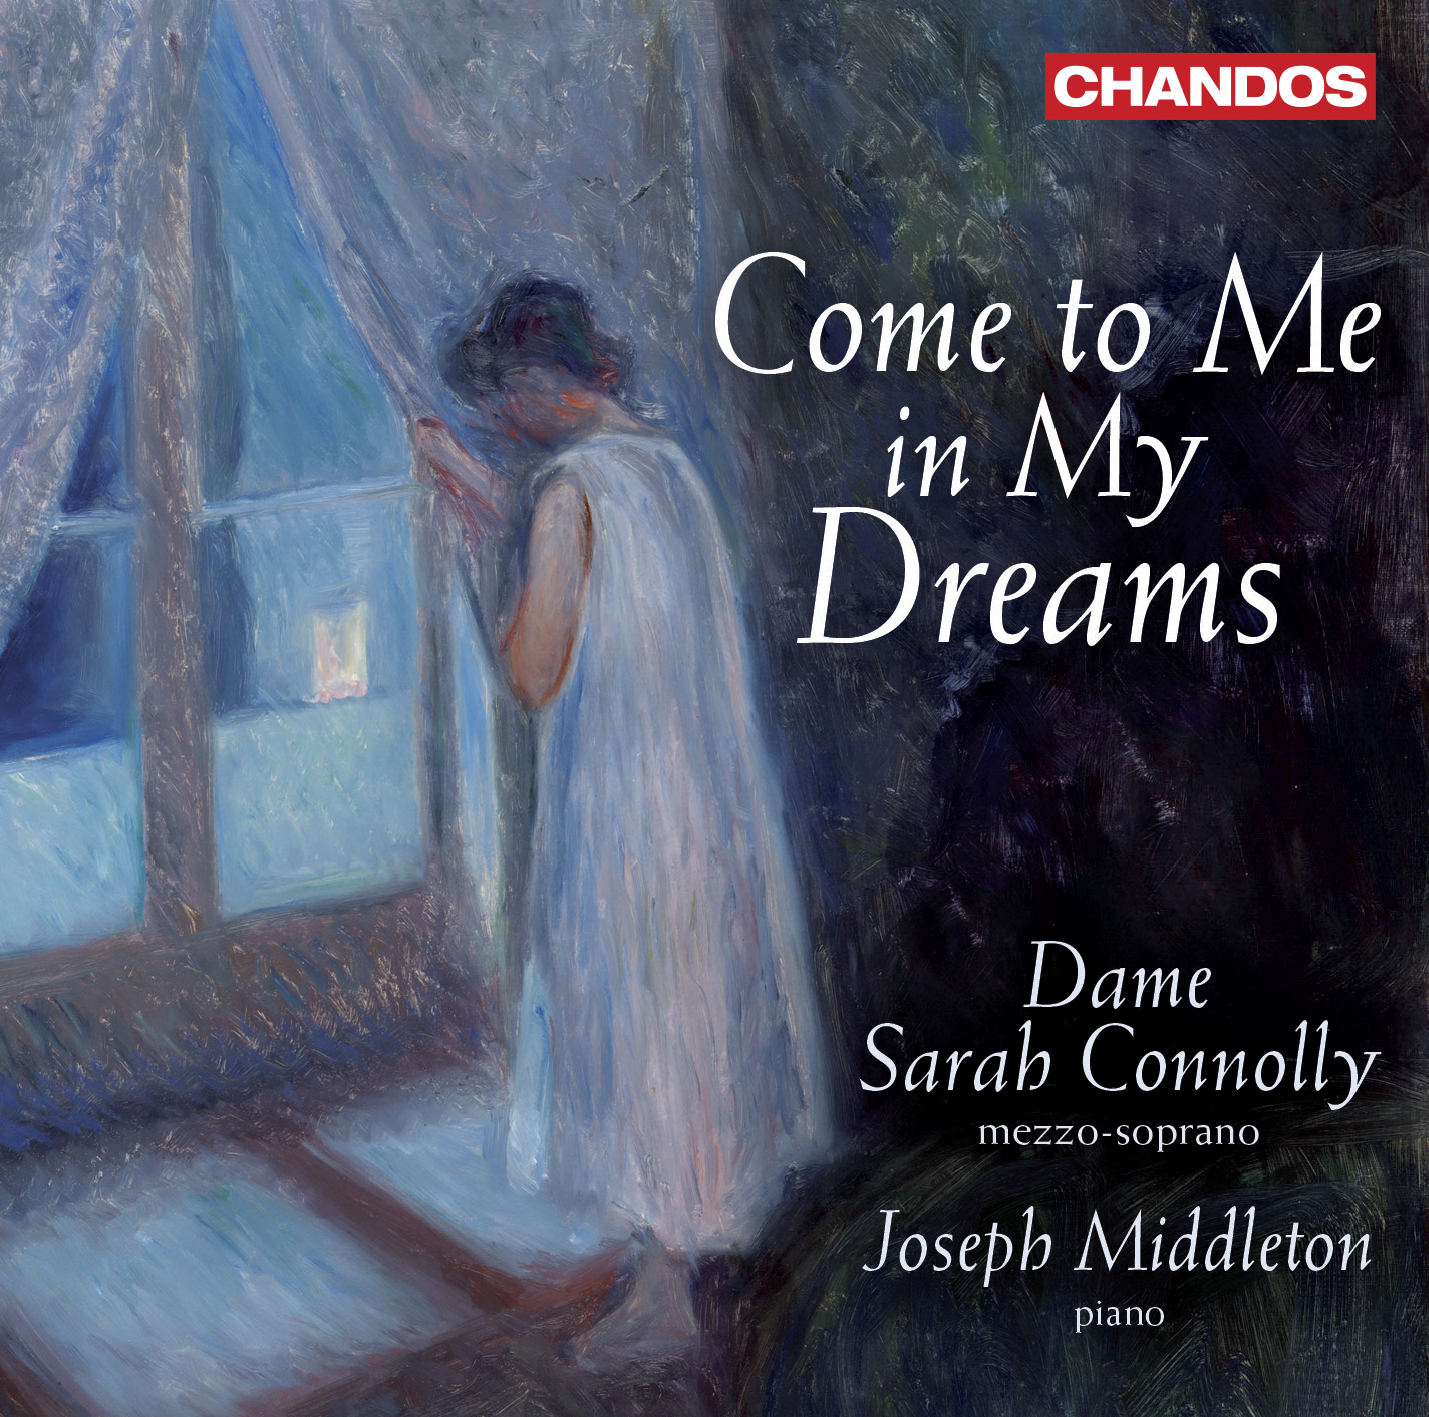 June 2018 RECORDING OF THE MONTH: COME TO ME IN MY DREAMS - 120 Years of Song from the Royal College of Music (Chandos CHAN 10944)